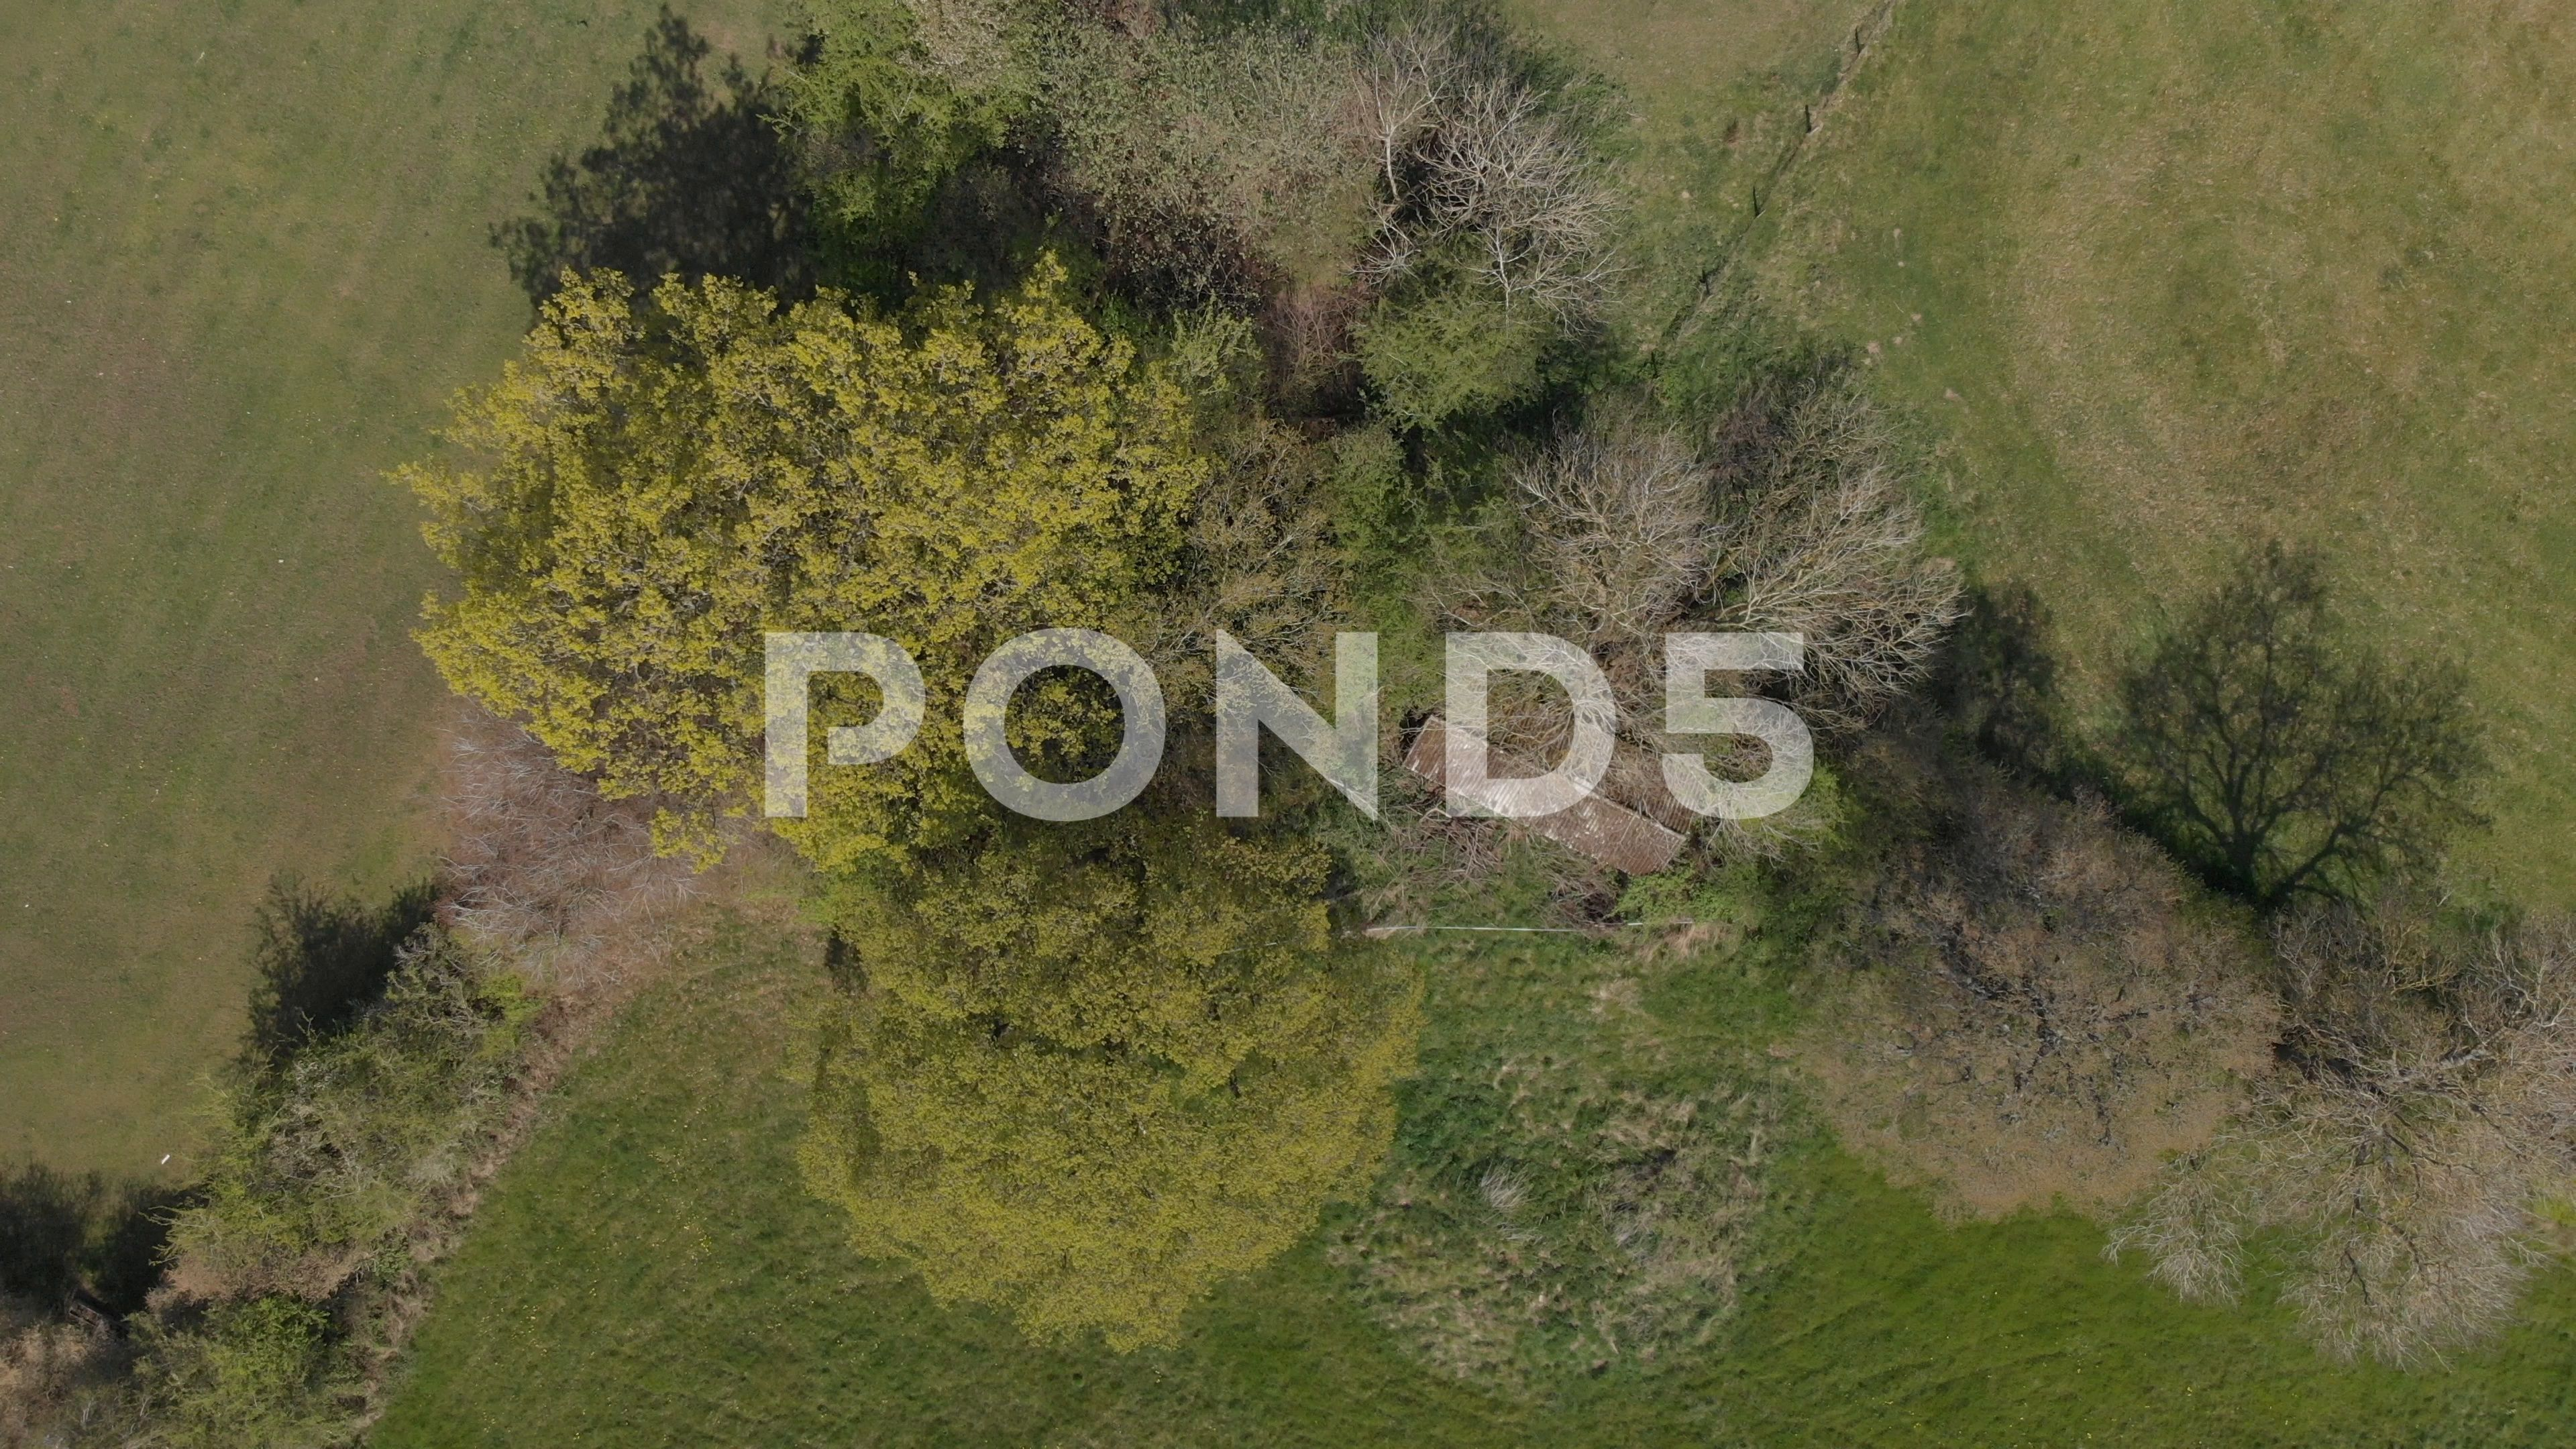 Bird S Eye View Old Corrugated Asbestos Roof Shed In Trees Aerial 4k Cine D Stock Footage Ad Corrugated Asbestos Roof Bird Birds Eye View Corrugated Shed